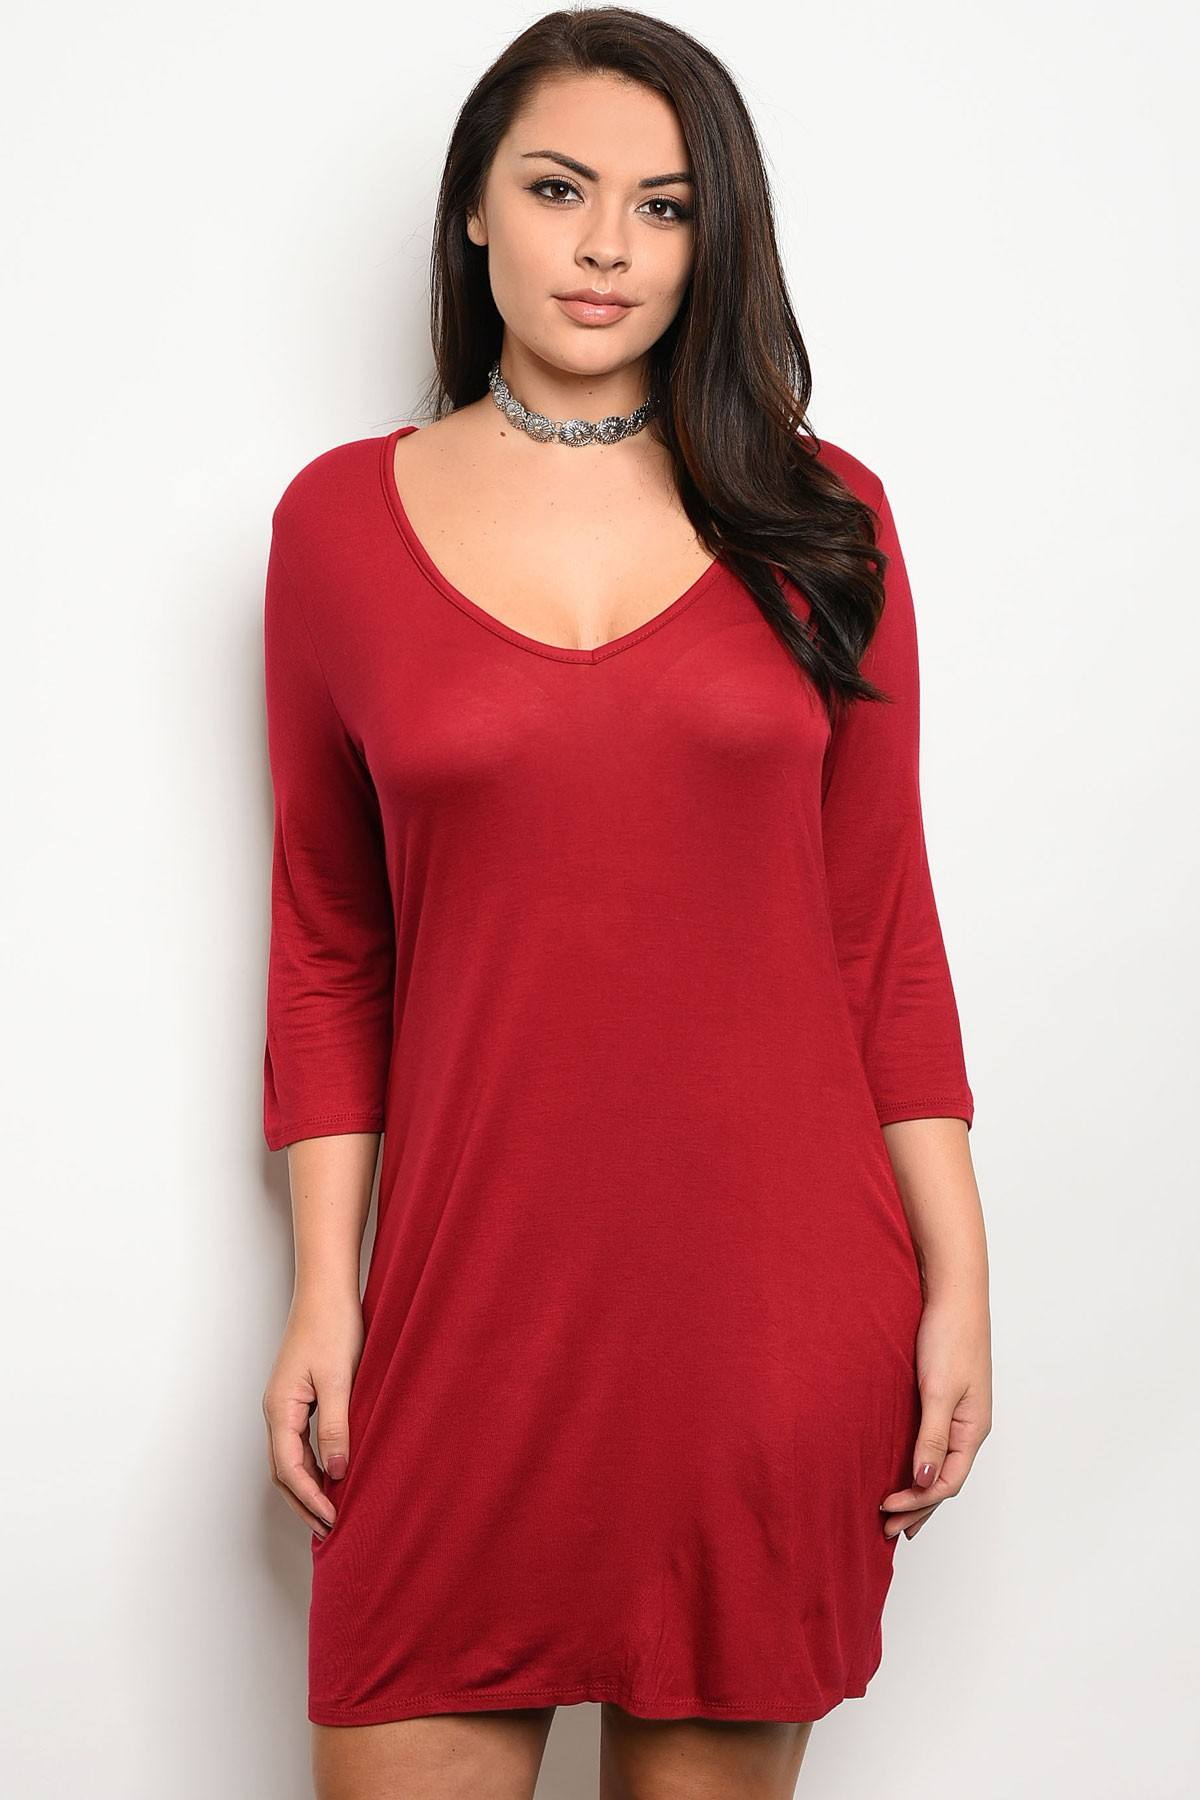 Ladies fashion plus size relaxed fit jersey knee length dress that features a v neckline